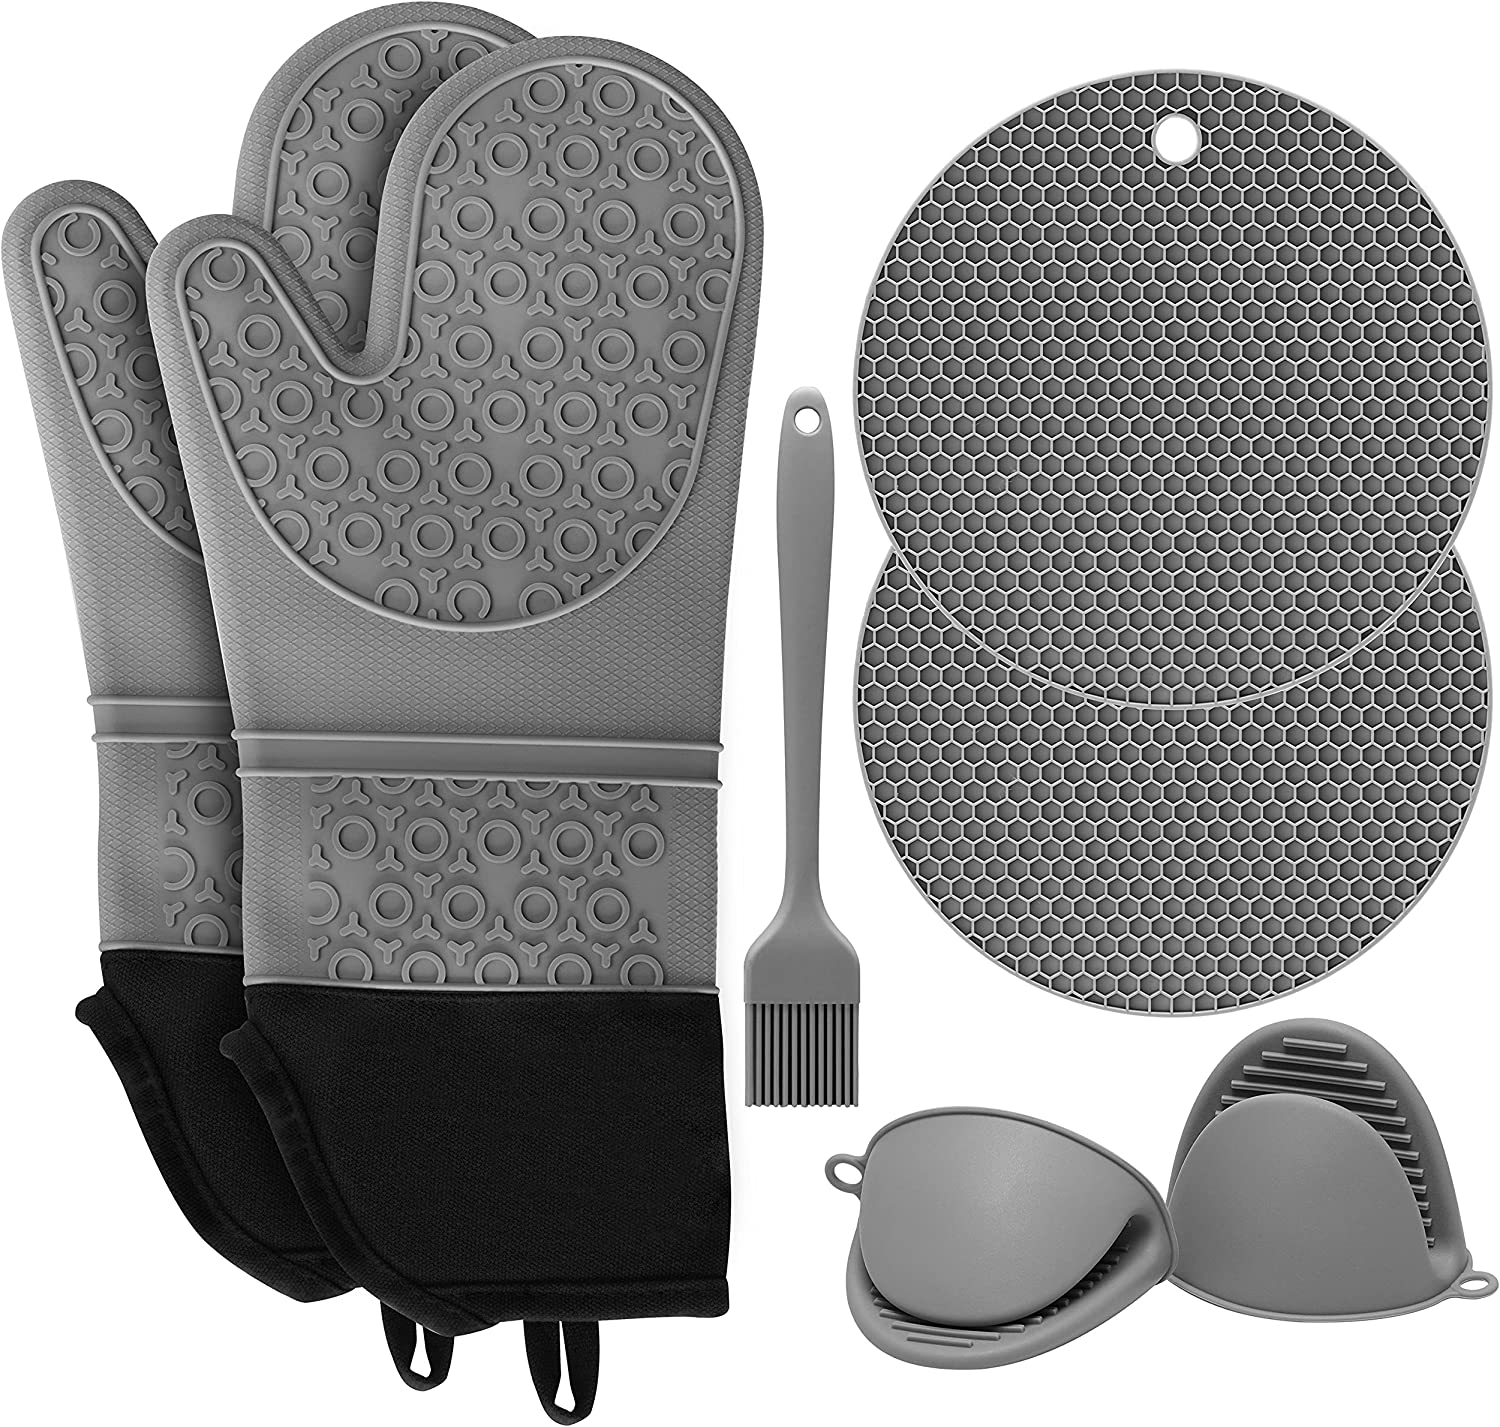 SD SENDAY Extra Long Oven Mitts and Pot Holders Sets, 15 Inches Heat Resistant Silicone Oven Mittens with Mini Oven Gloves Brush and Hot Pads Pot Holders for BBQ Kitchen Baking Cooking, Pack of 7